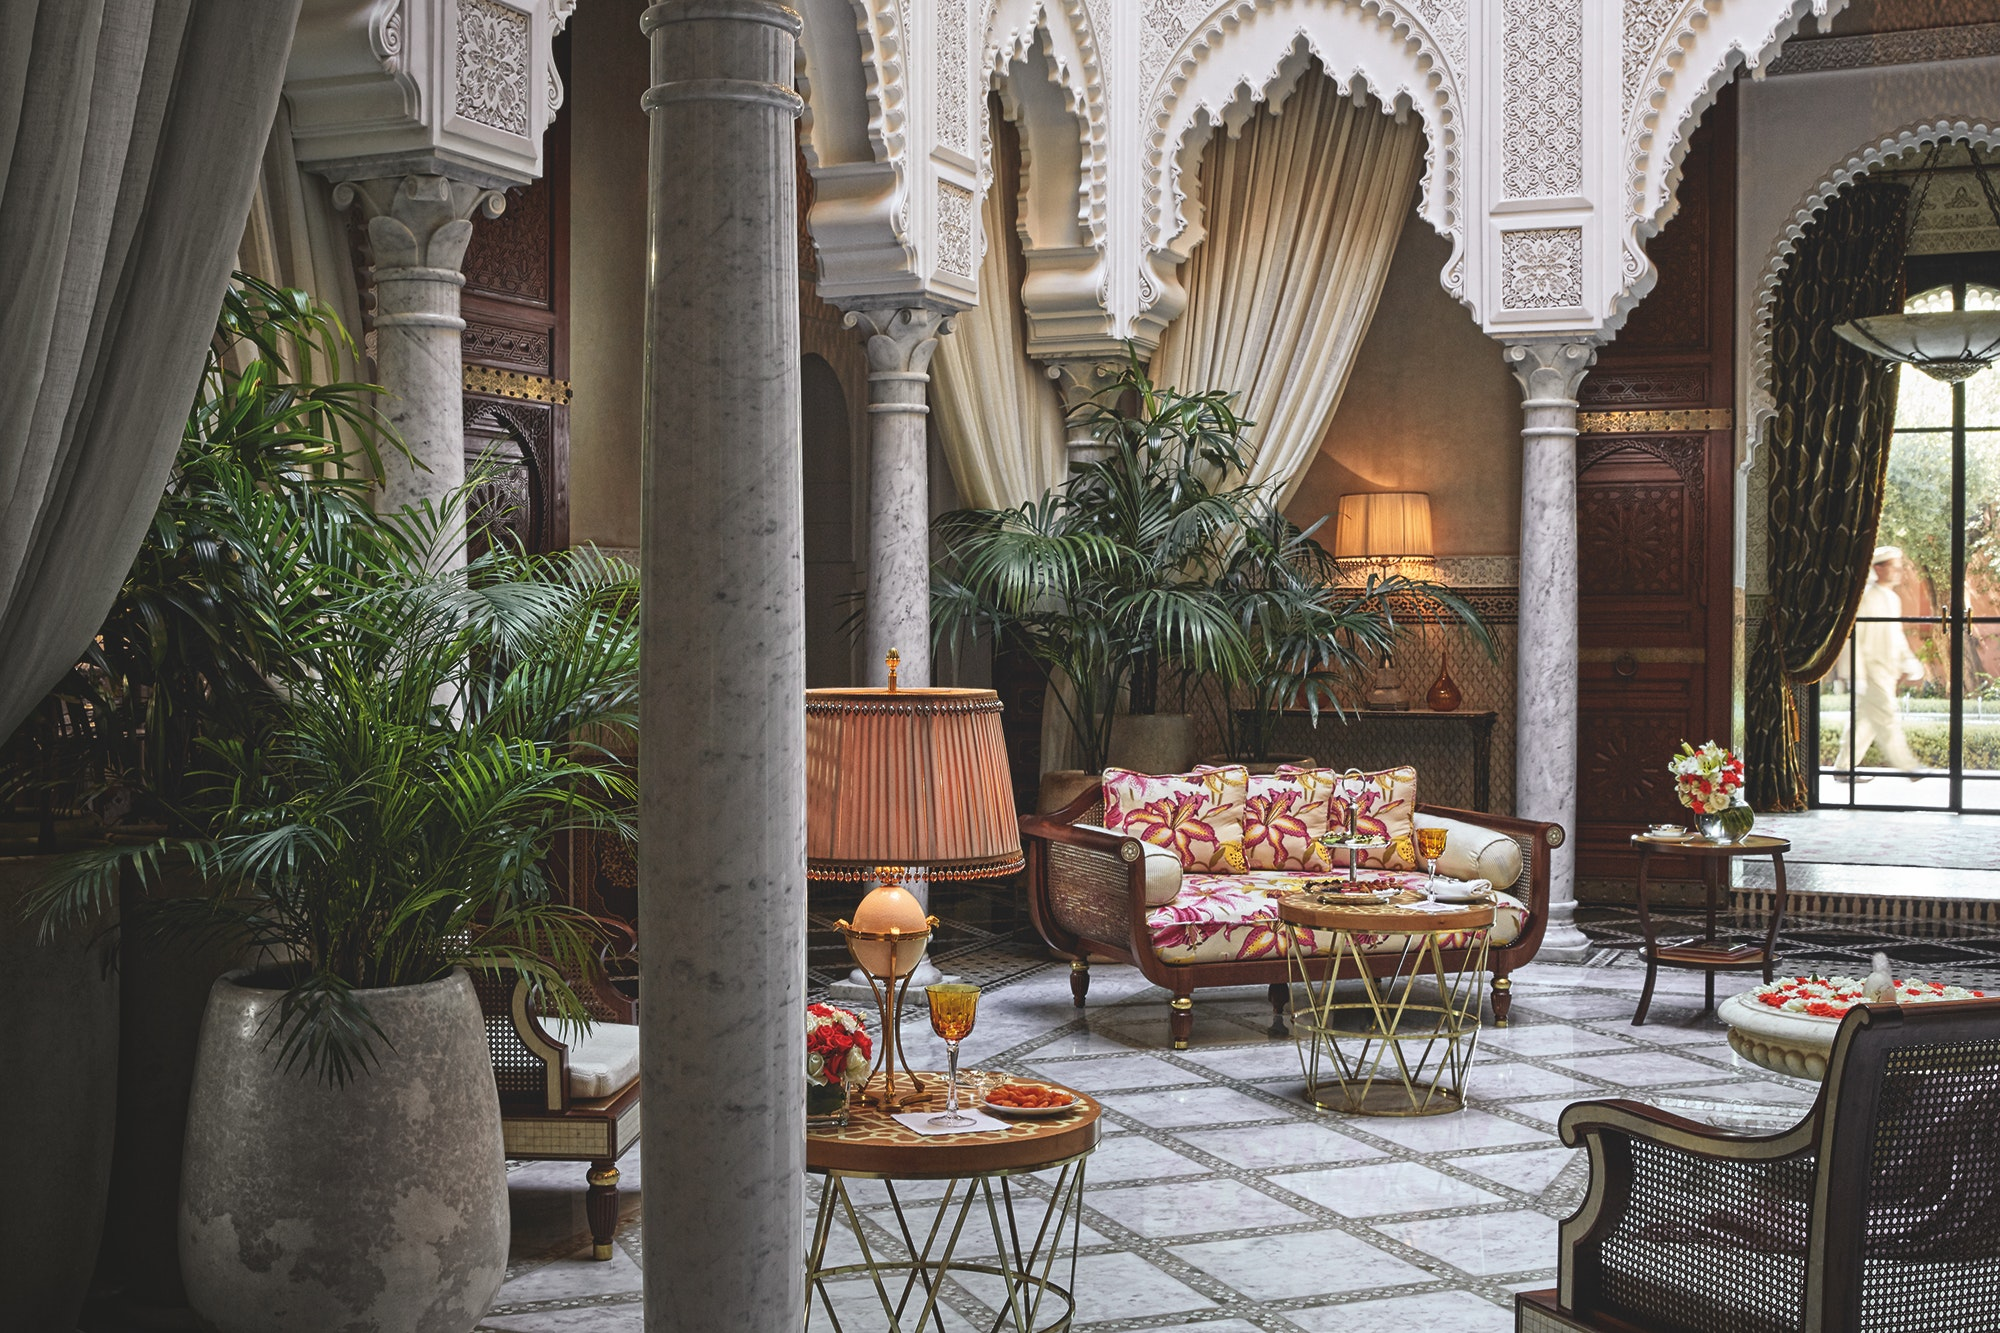 Each room at the luxury Royal Mansour is an individual riad complete with courtyard.